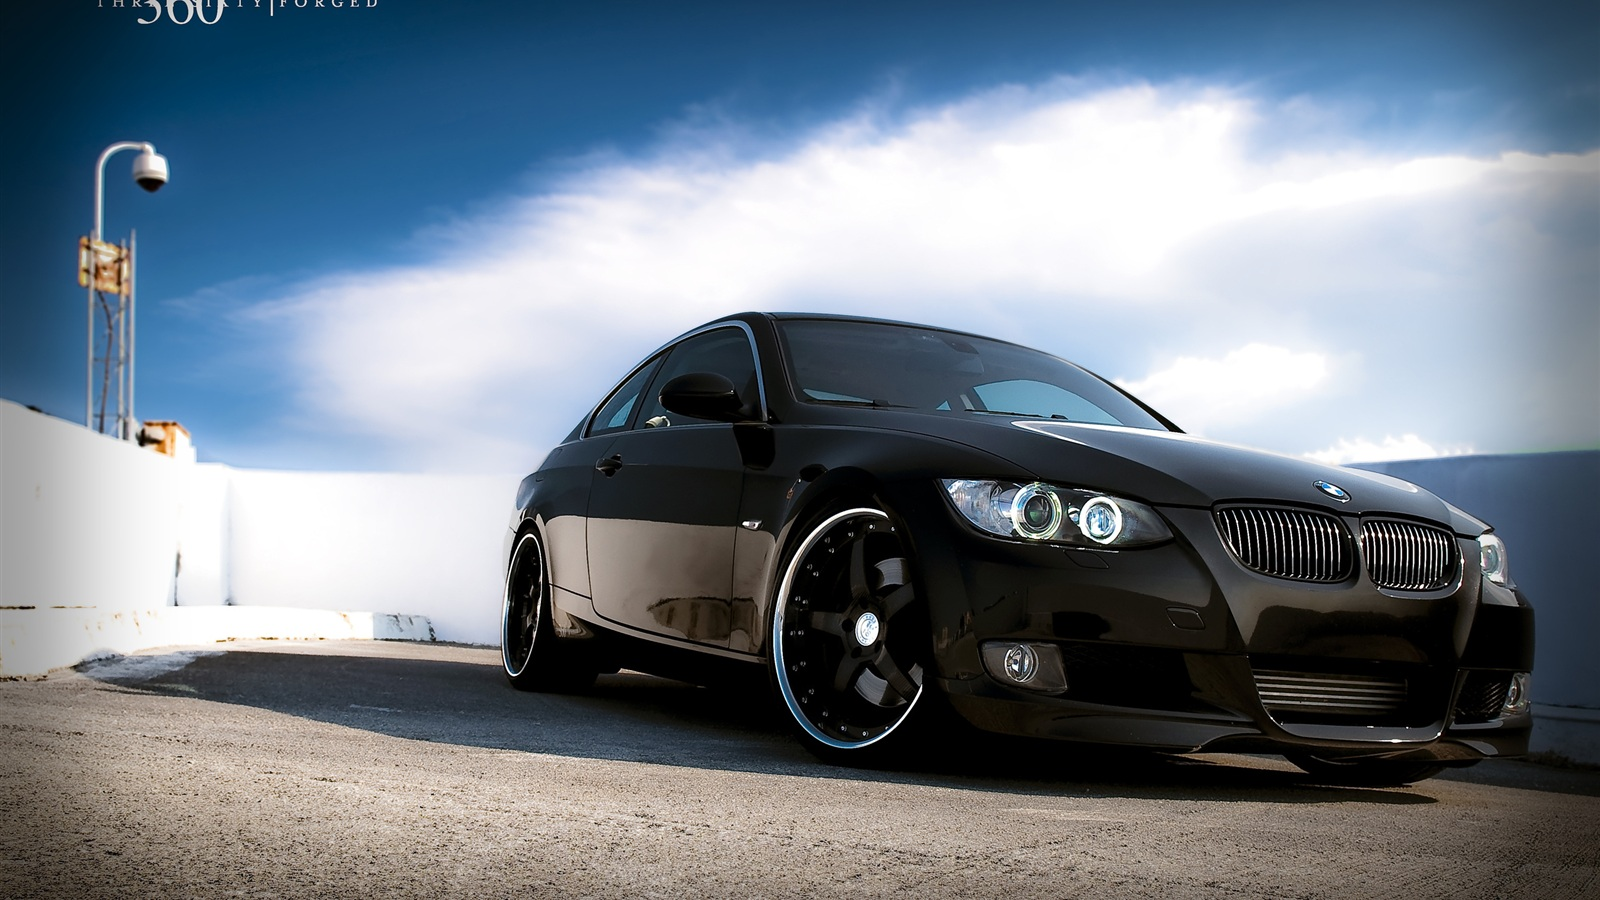 BMW car black color Wallpaper | 1600x900 resolution wallpaper download ...: best-wallpaper.net/BMW-car-black-color_1600x900.html